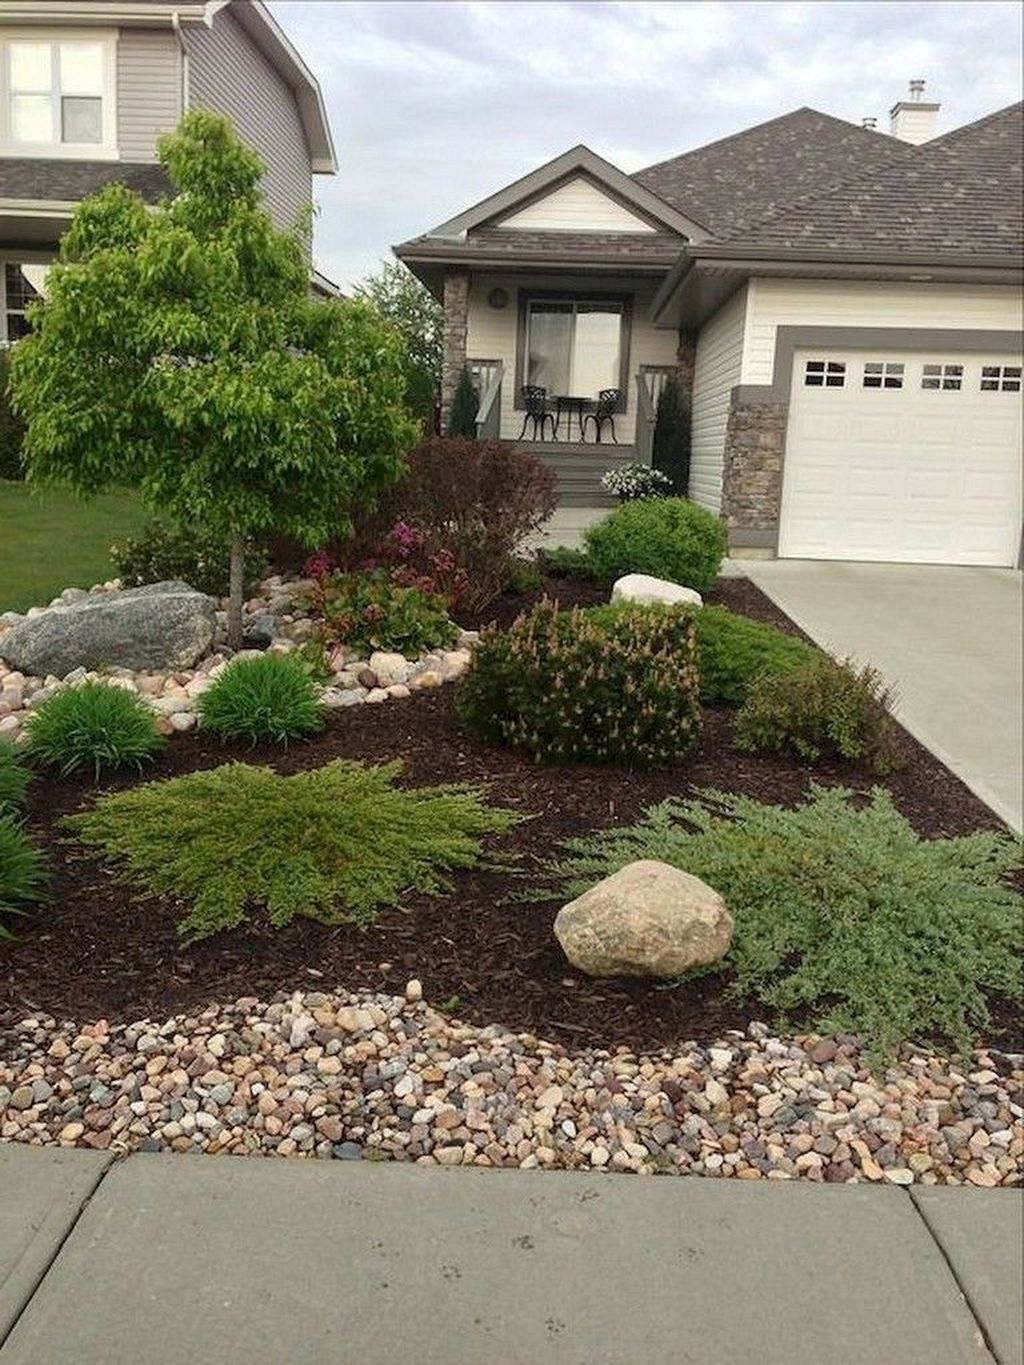 20 Inexpensive Front Yard Landscaping Ideas Trendedecor Front Yard Landscaping Design Small Front Yard Landscaping Home Landscaping